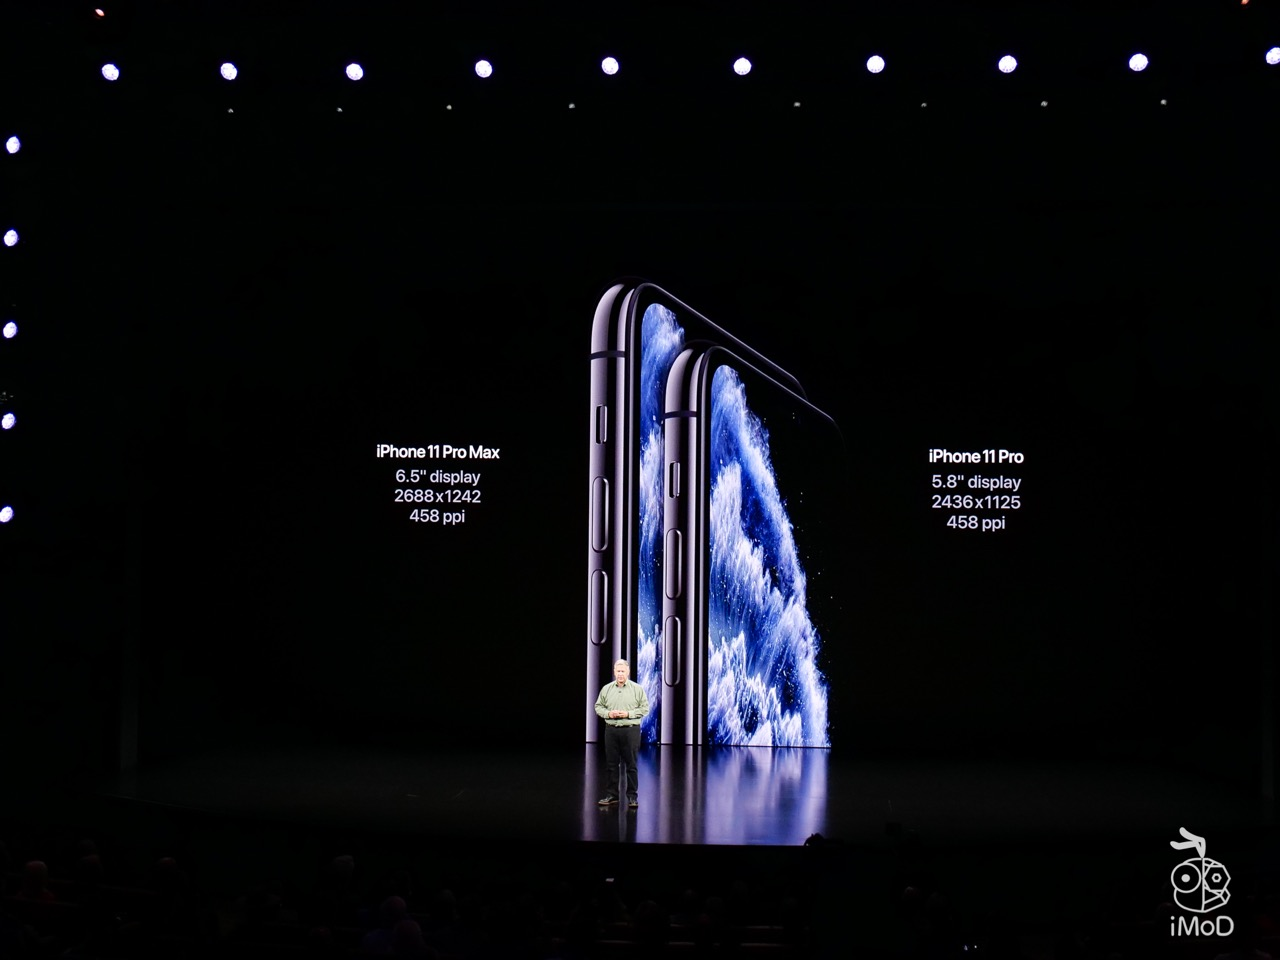 Iphone 11 Pro And 11 Pro Max Display